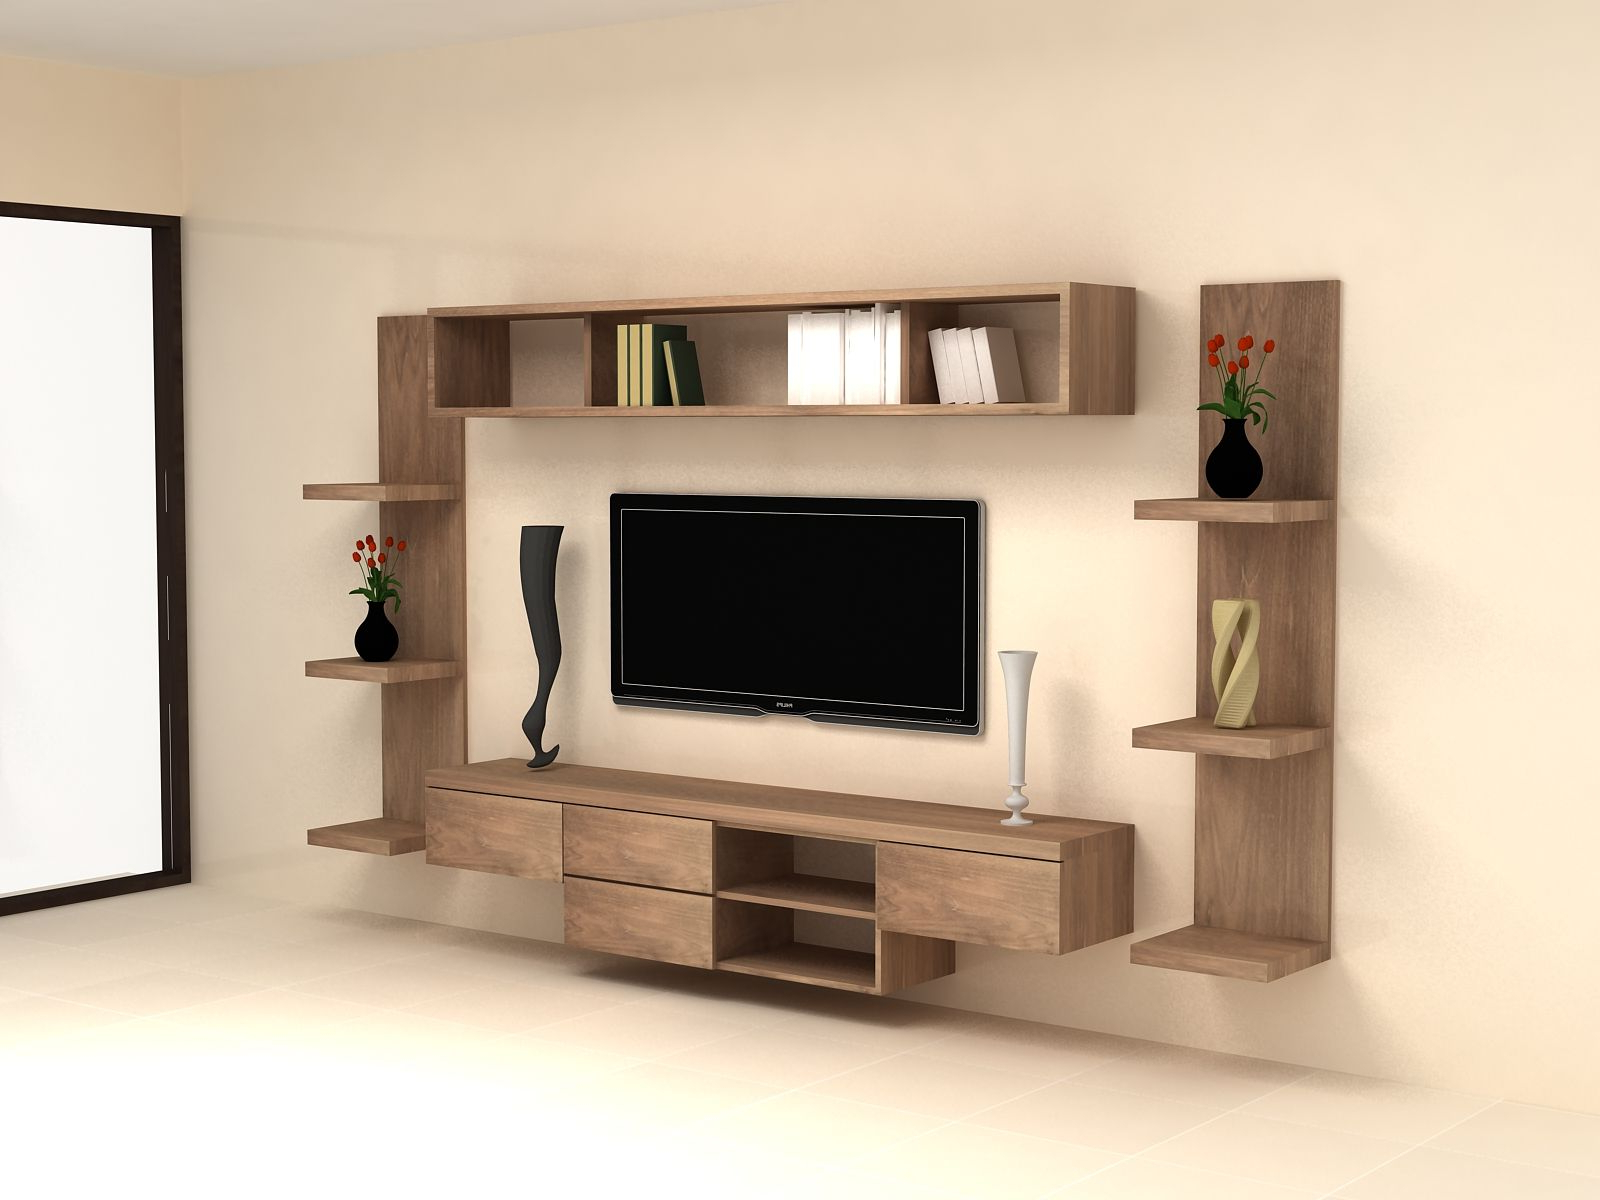 Tv Cabinets In Tv Cabinets And Wall Units (View 2 of 20)